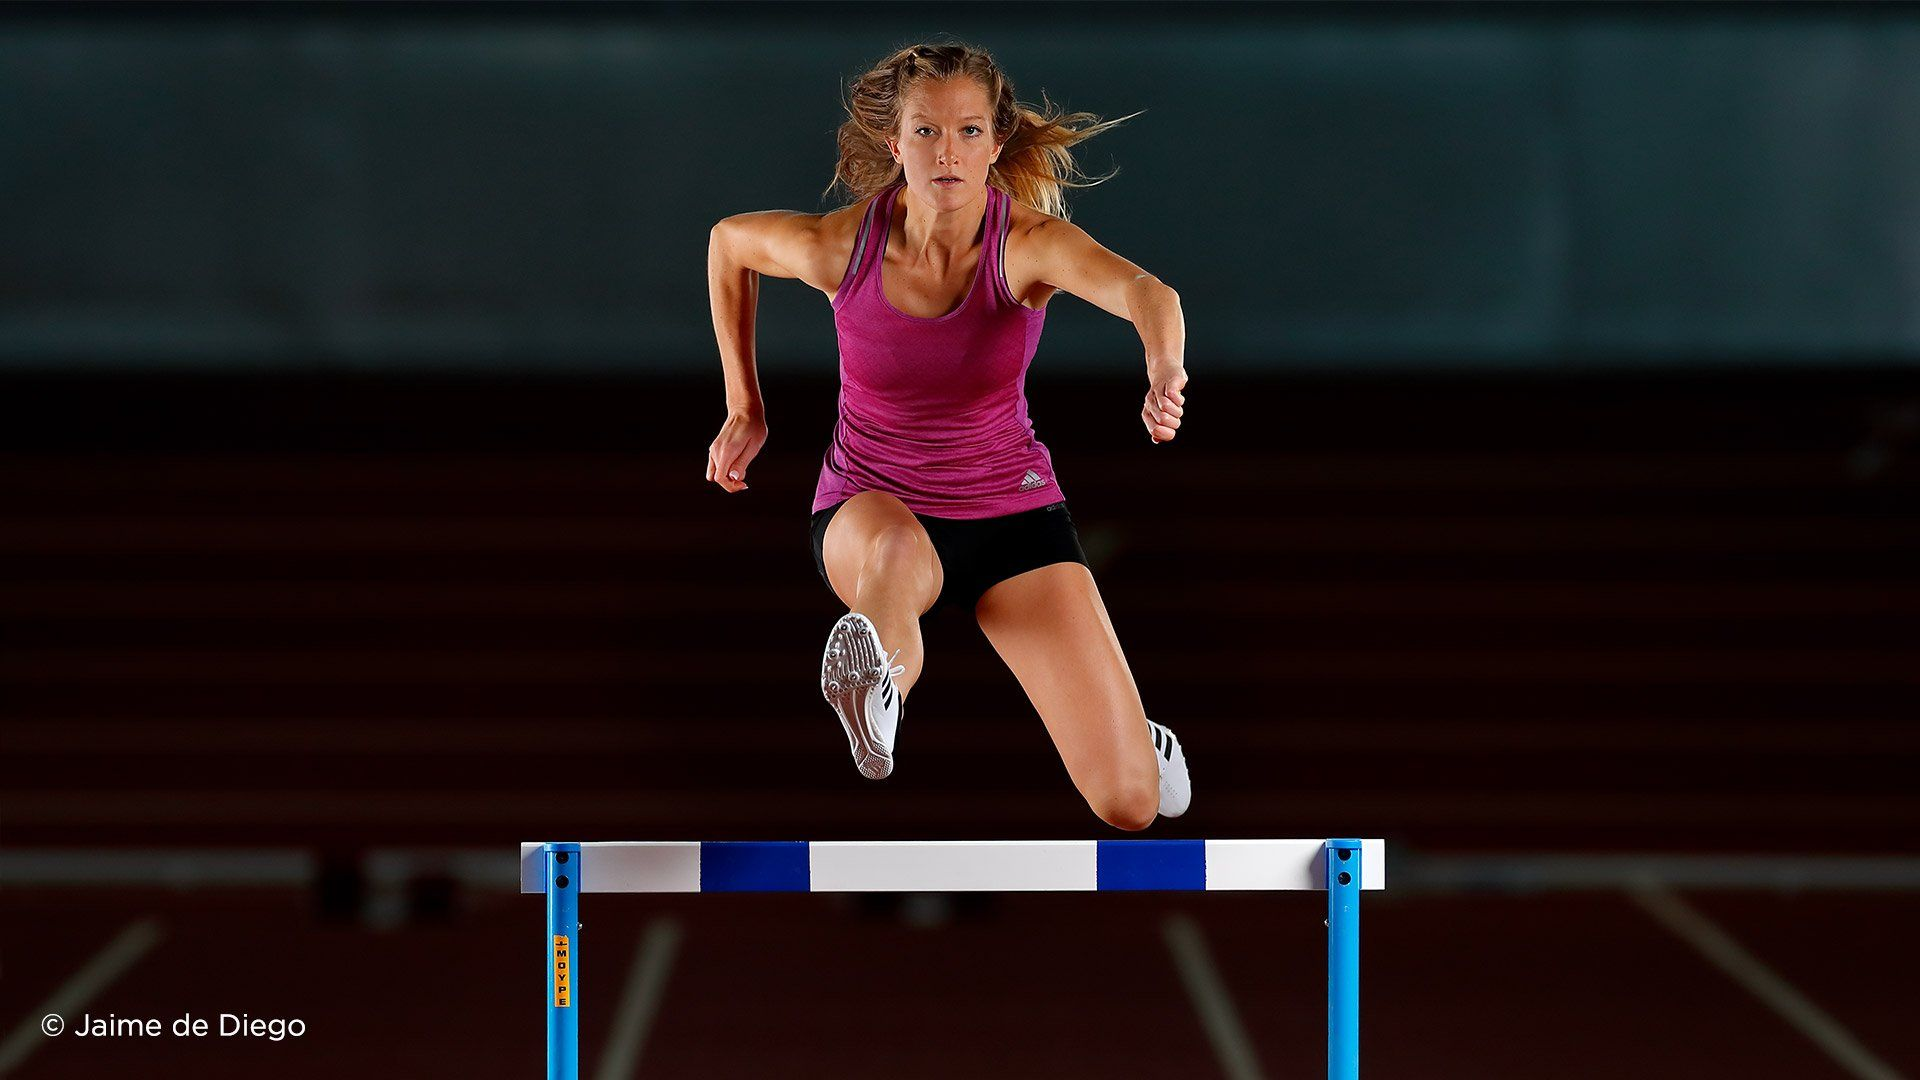 EF 400mm F2.8l IS III USM female athlete hurdles sample 2